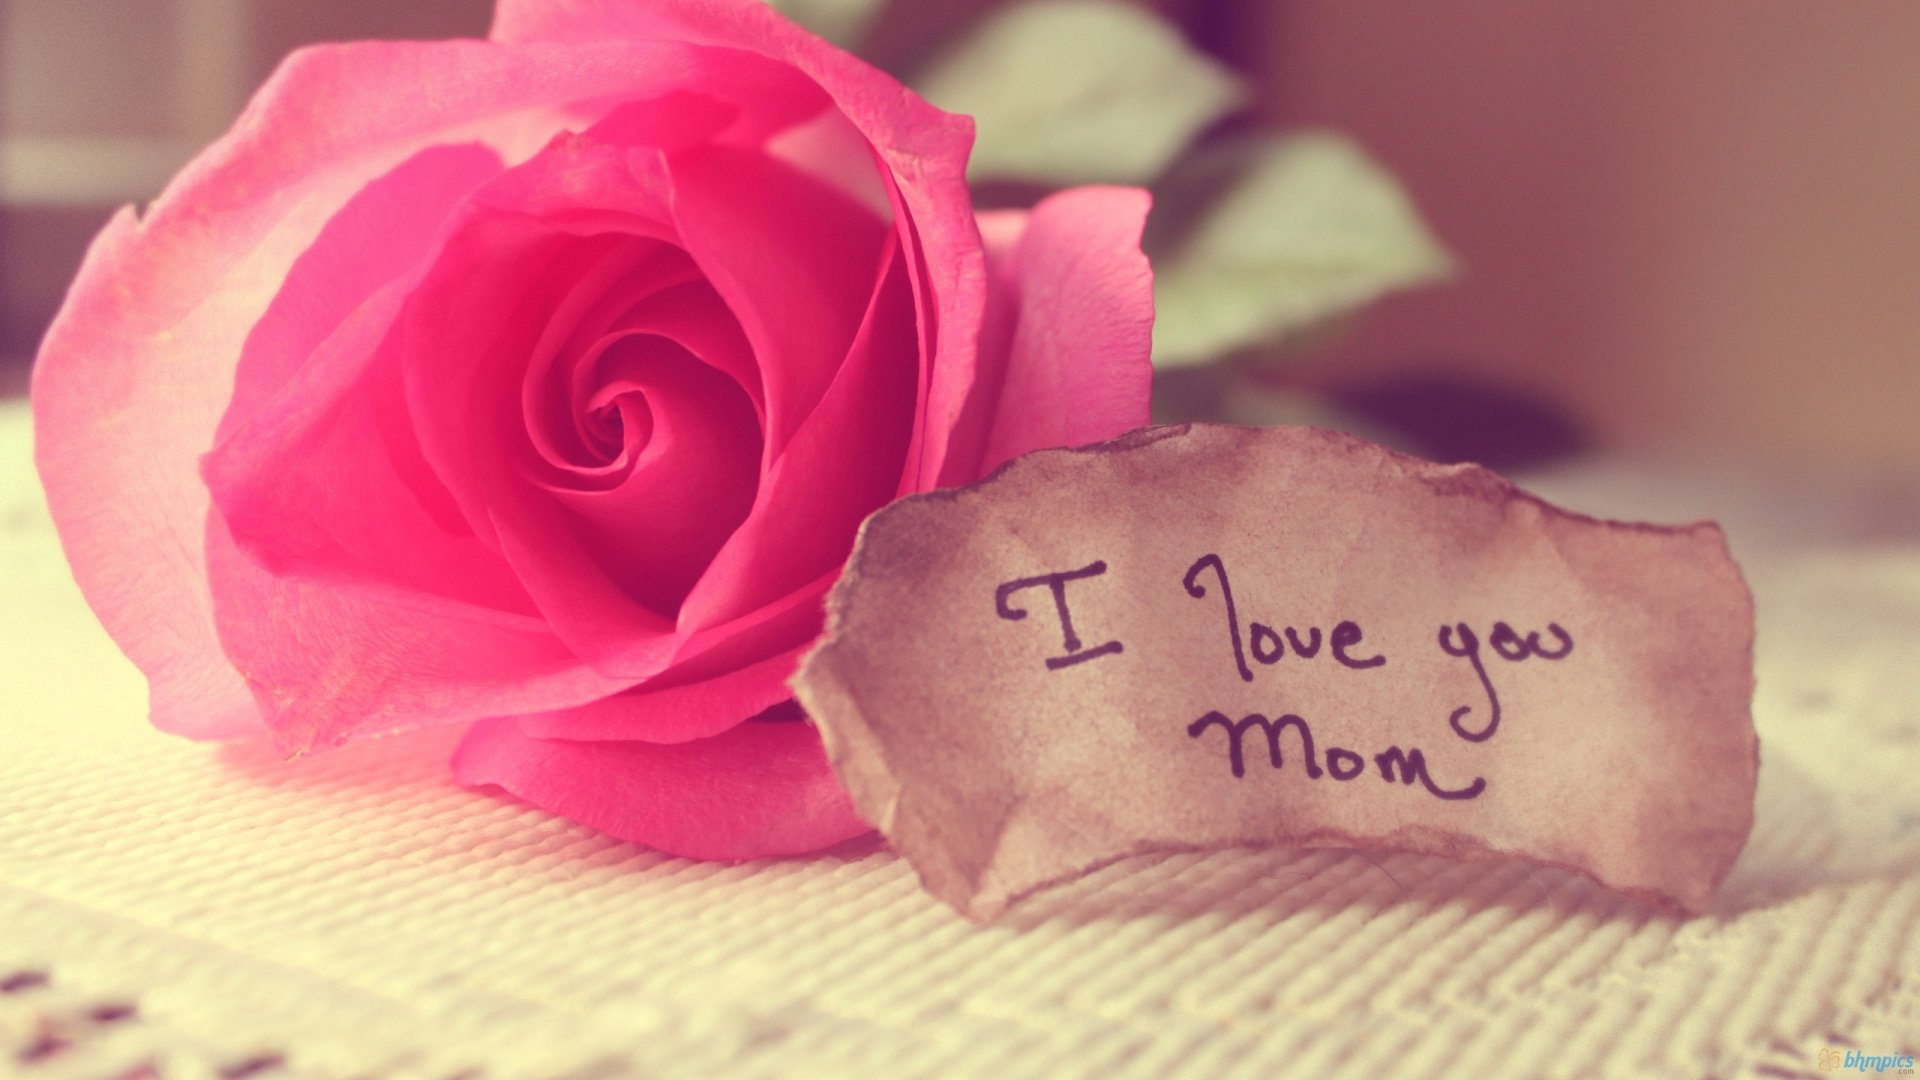 Mothers Day I Love You Mom Exclusive HD Wallpapers 3122 1920x1080